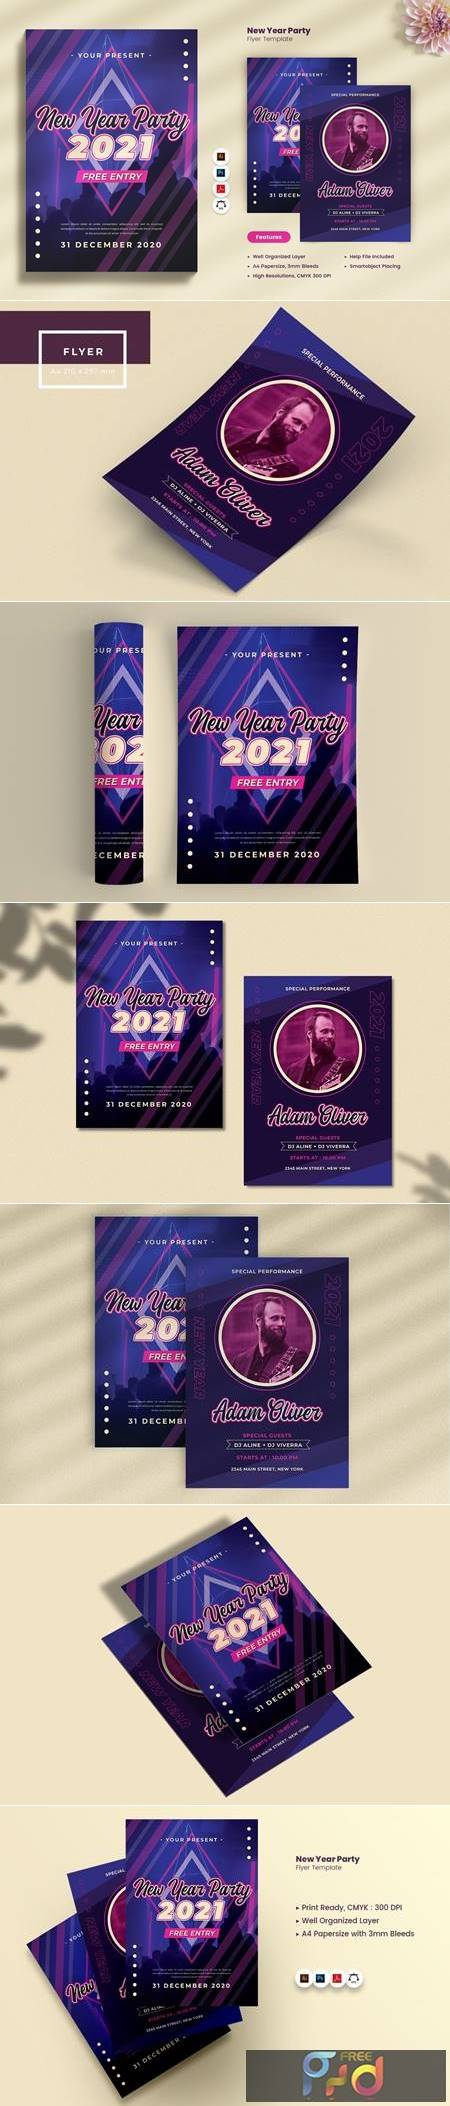 New Year Party 2021 Flyer P3S742Q 1